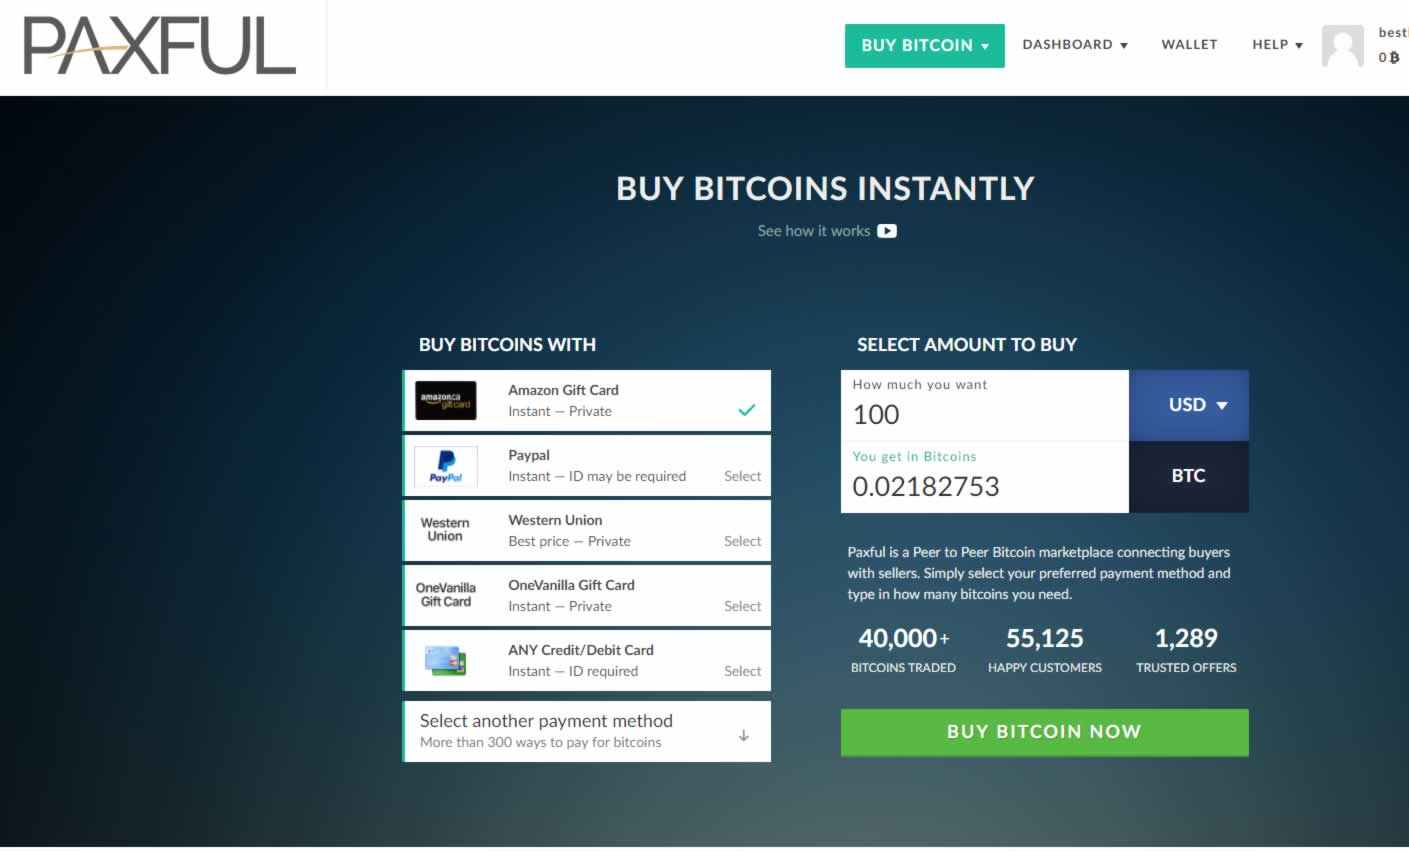 Paxful - Buy Bitcoin With Virtually Anything of Value